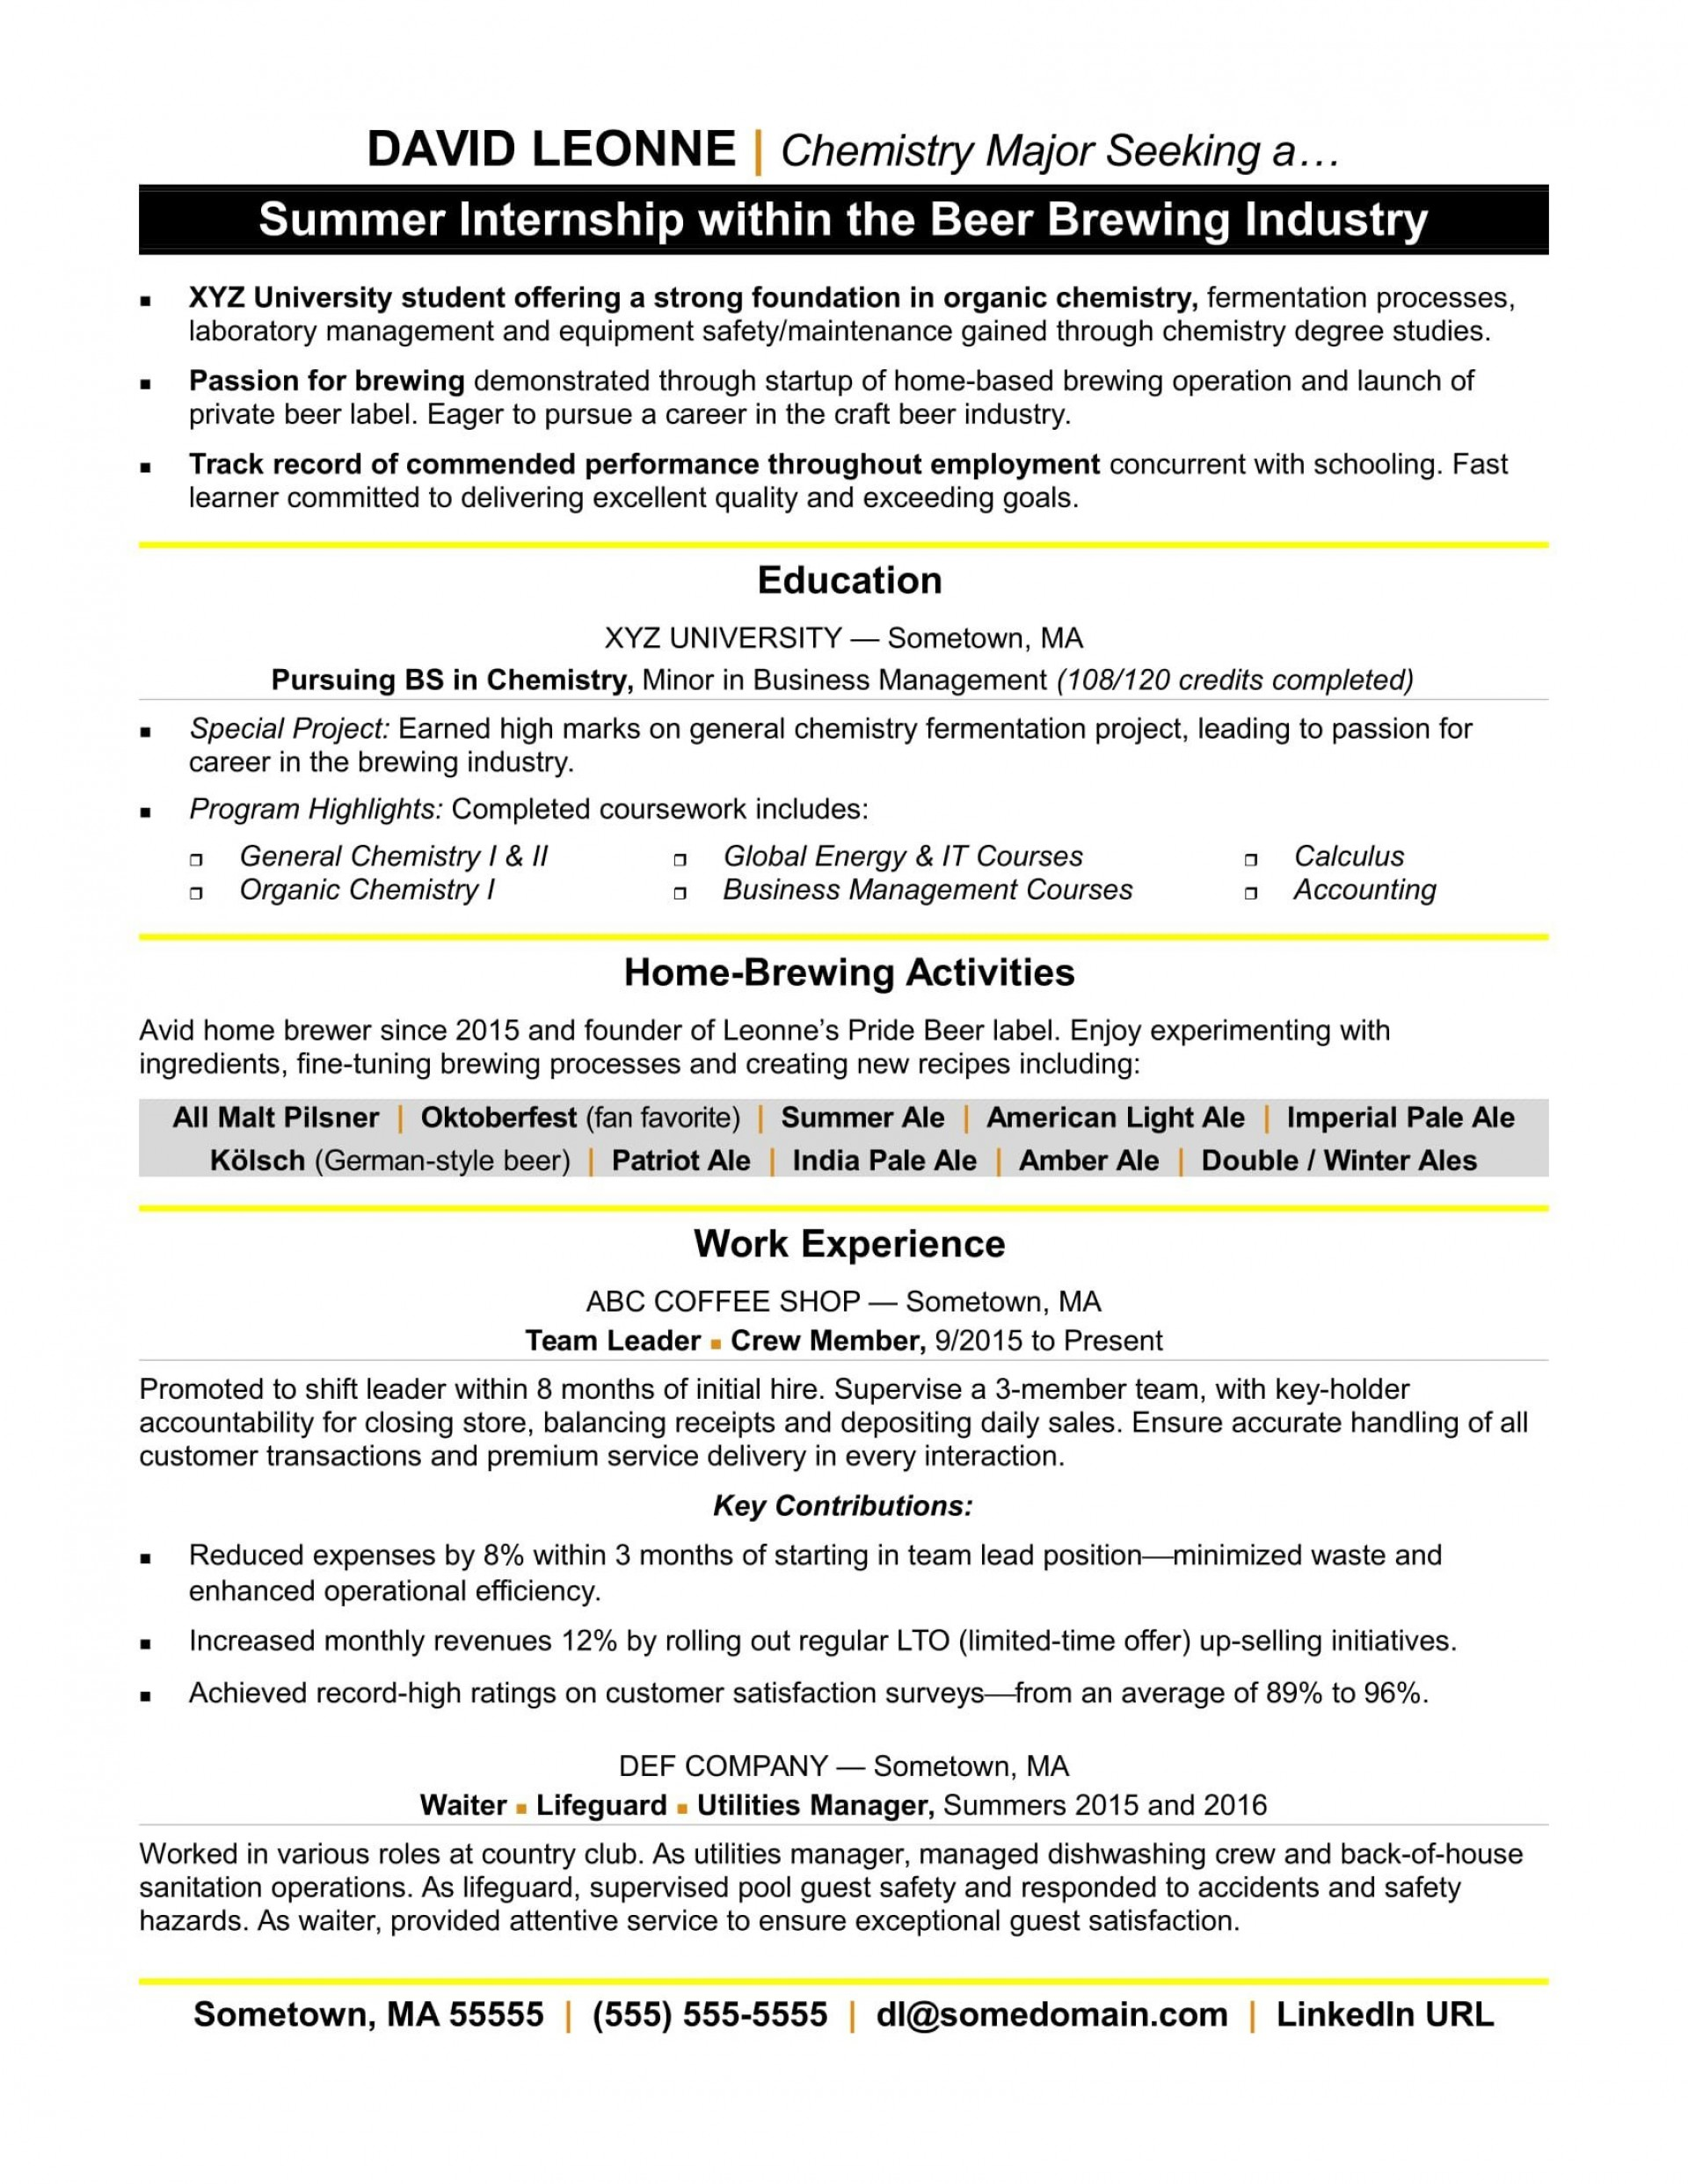 004 Beautiful Resume Template For Intern Picture  Interns Internship In Engineering Law Example1920